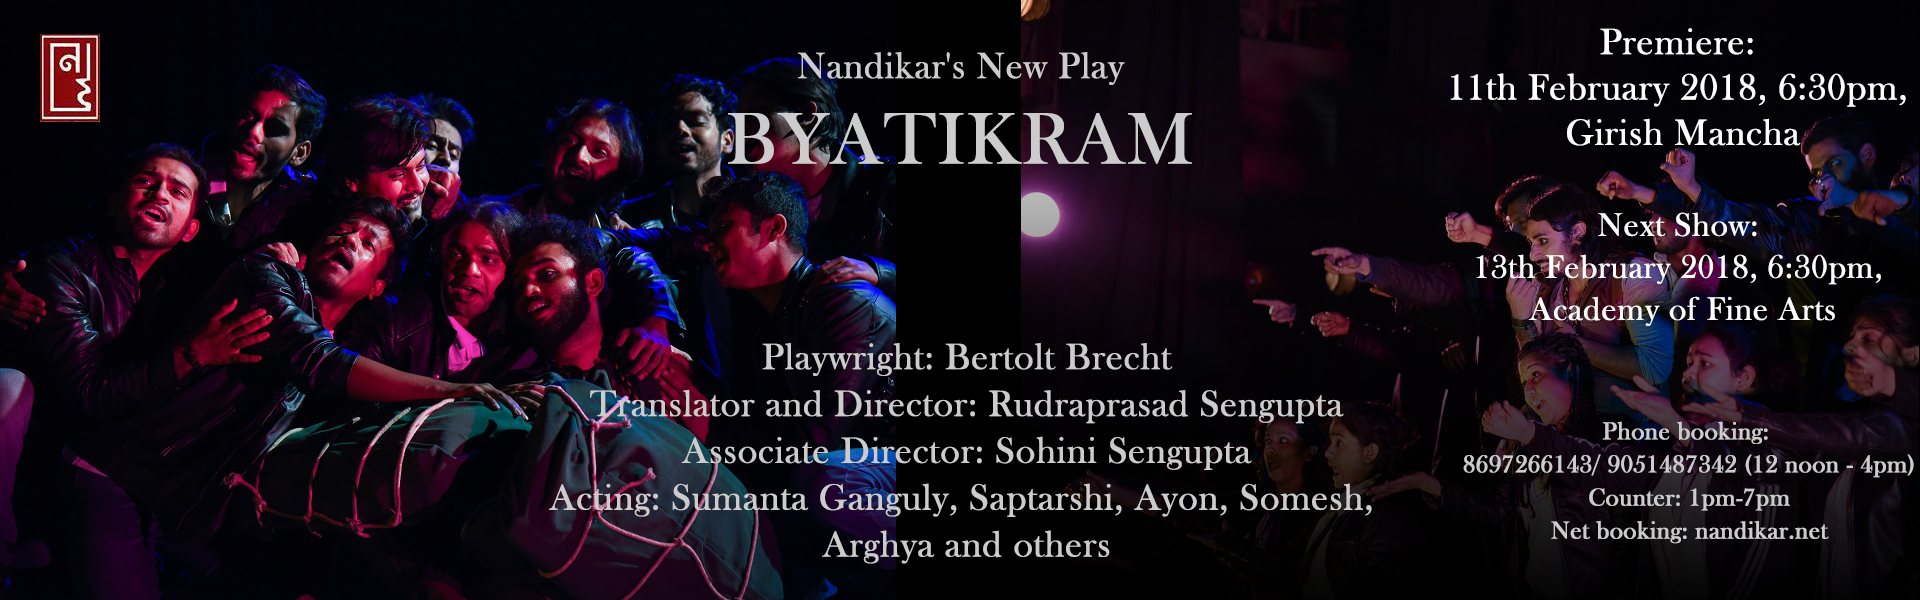 Nandikar's New Play Byatikram